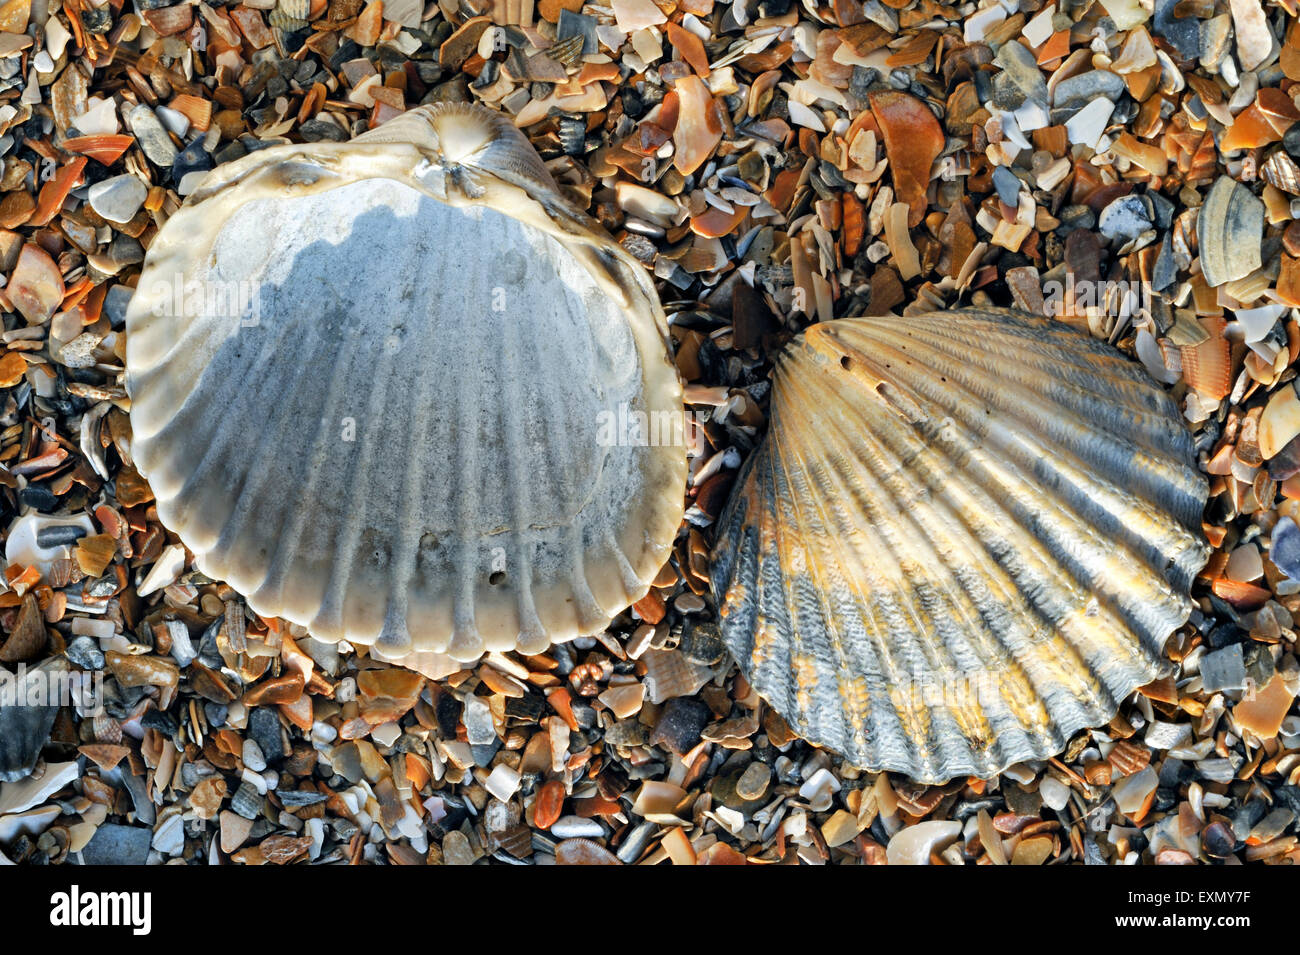 Poorly ribbed cockle (Acanthocardia paucicostata) shells washed on beach - Stock Image